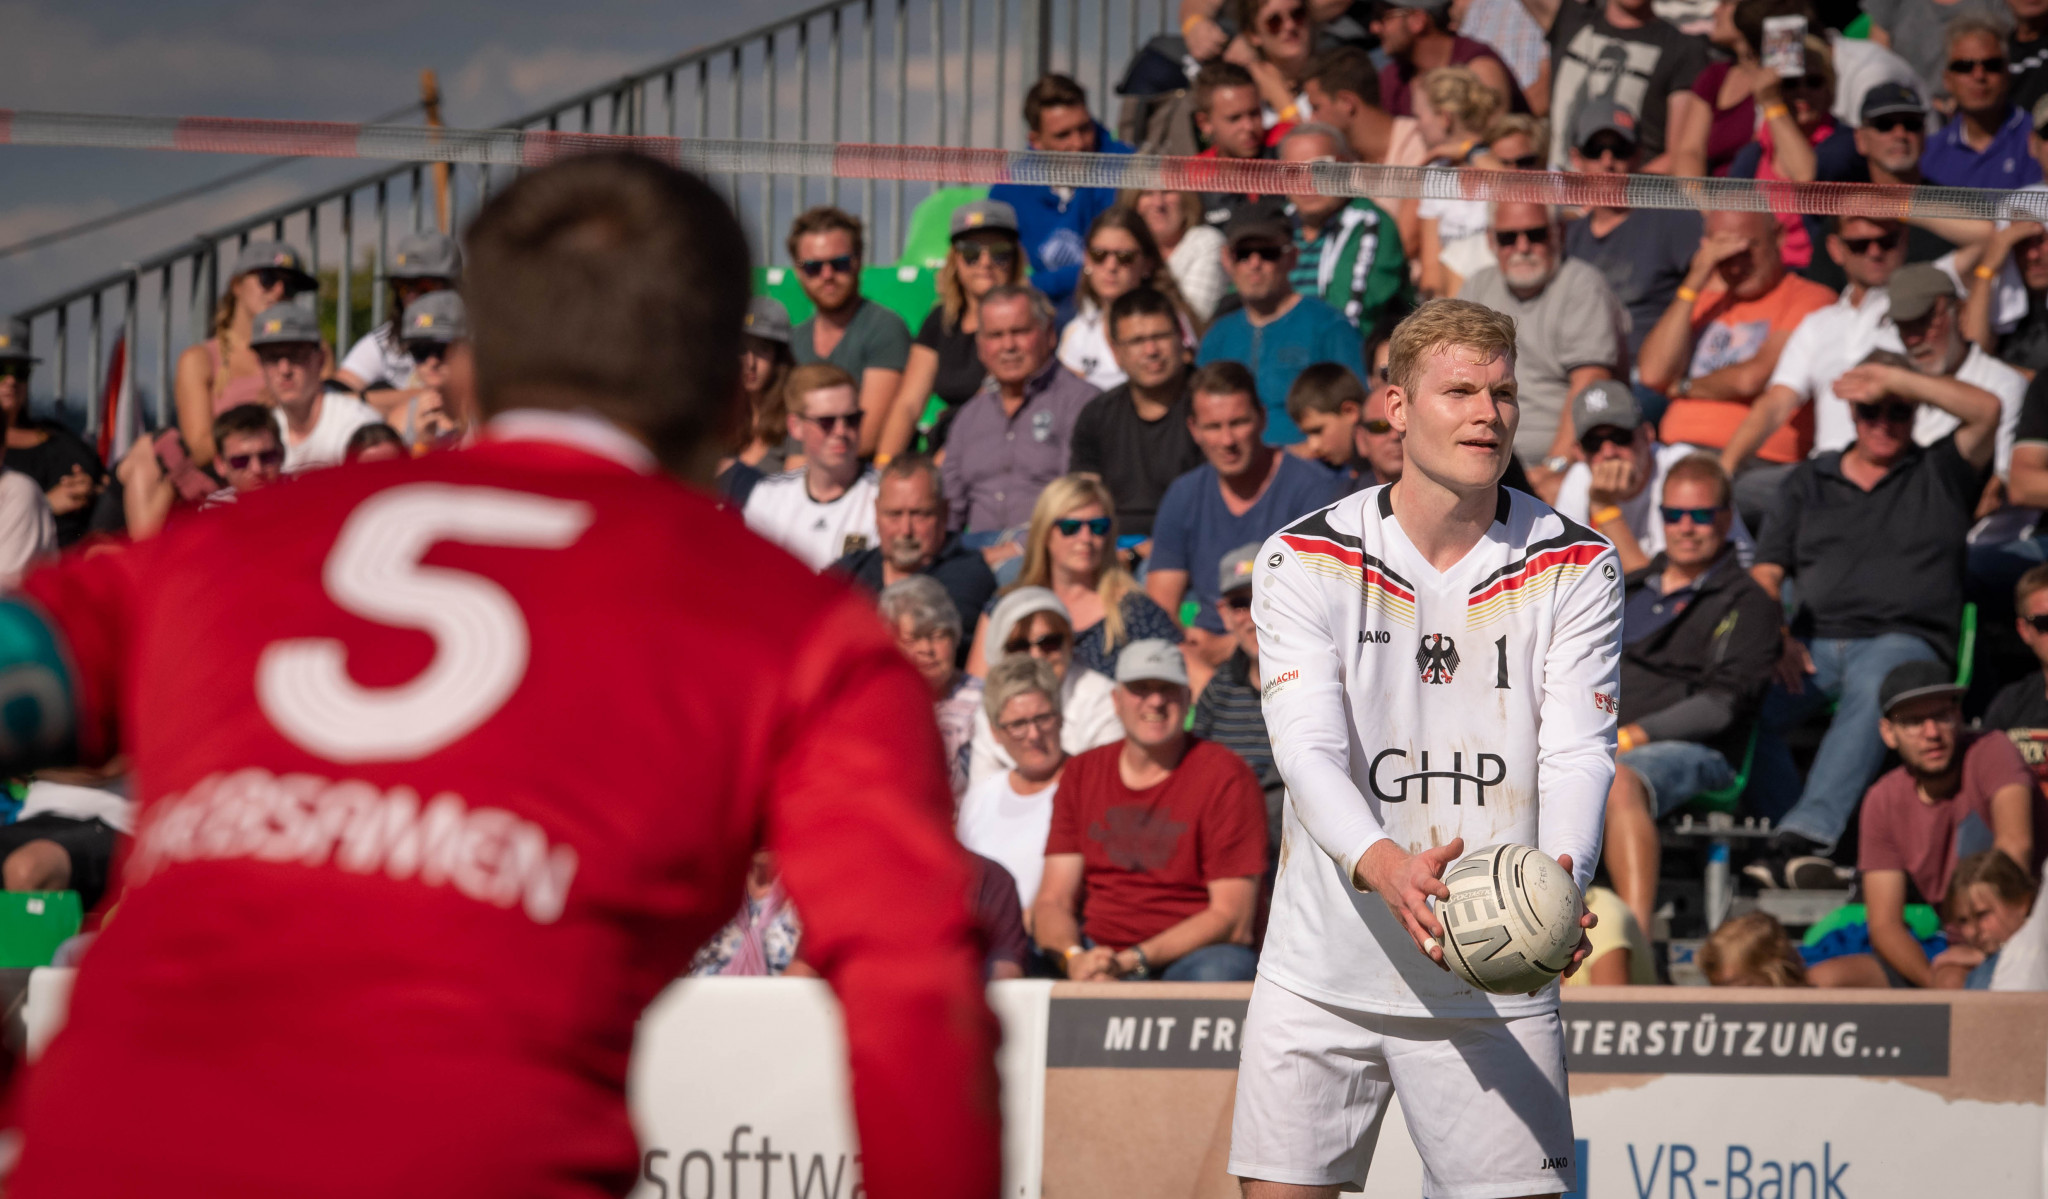 Patrick Thomas, right, will be part of the German team which is bidding to defend its 2015 world title and win an 11th win in 14 editions at the IFA World Fistball Championship in Winterthur  ©IFA